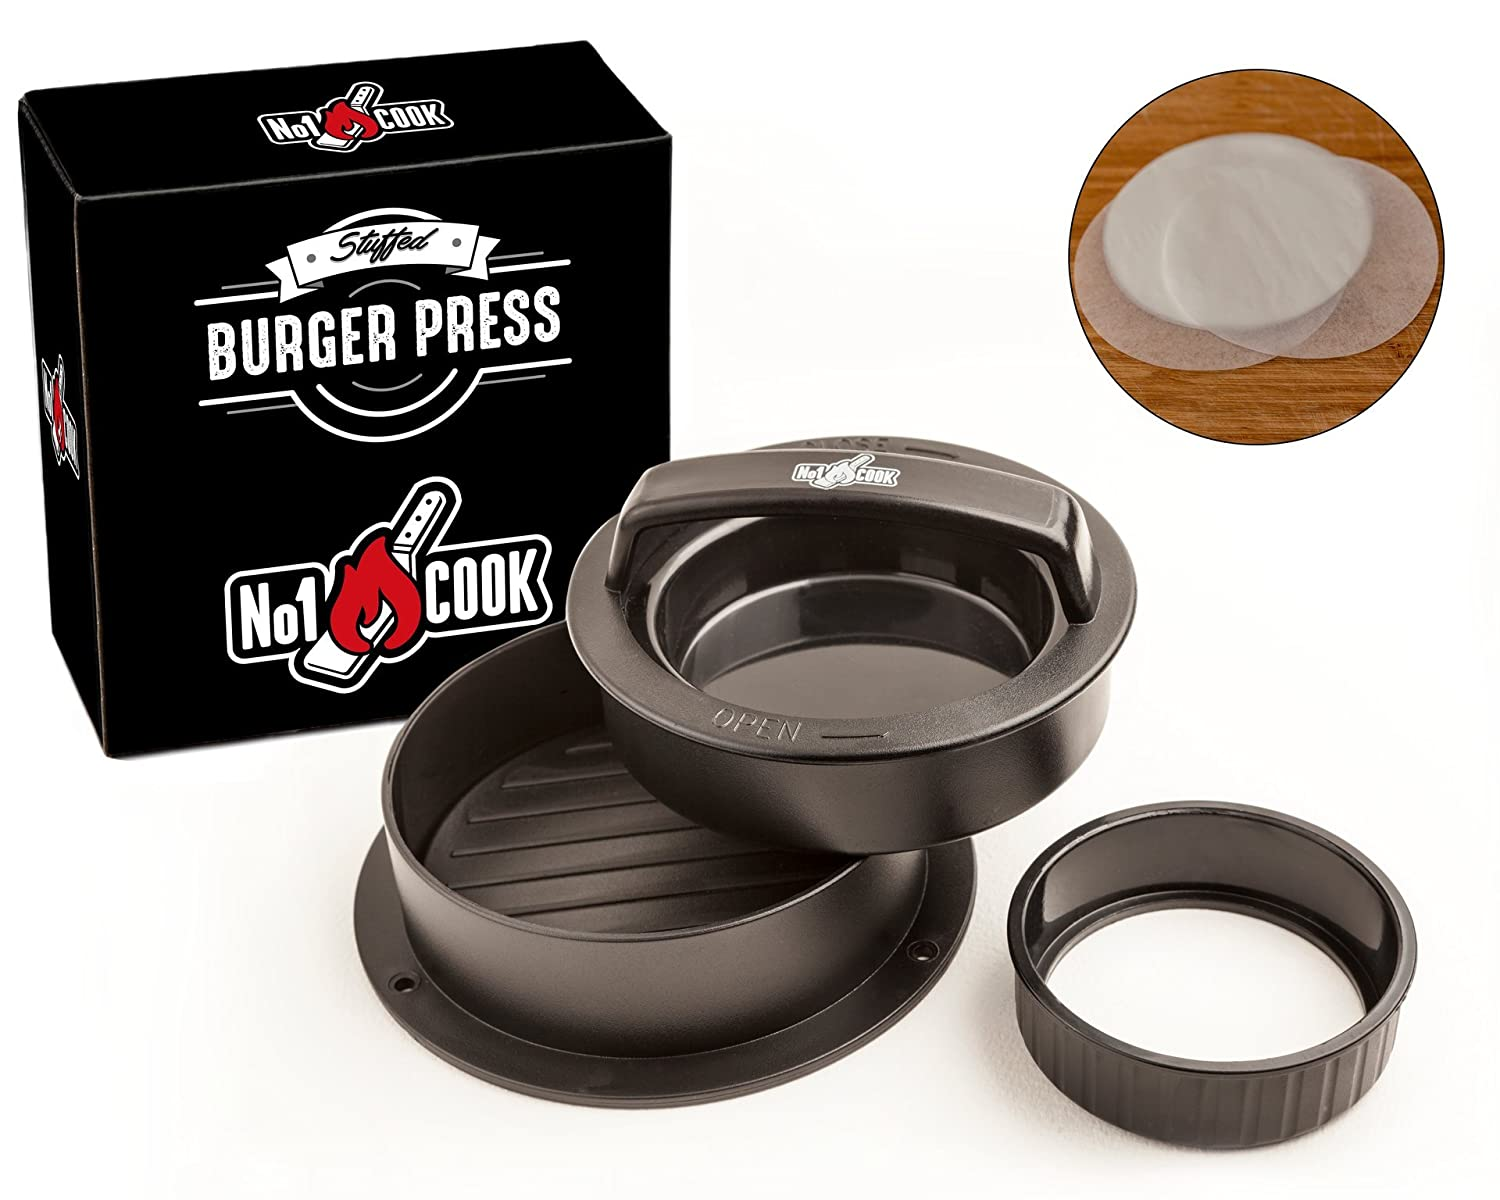 Stuffed Burger Press: Hamburger Patty Maker with 30 Wax Paper Discs to Make Great Sliders, Stuffed Burgers and Perfect BBQ Patties - Best Burger Press For cooking on the Barbecue, Stove or any Grill. No1Cook